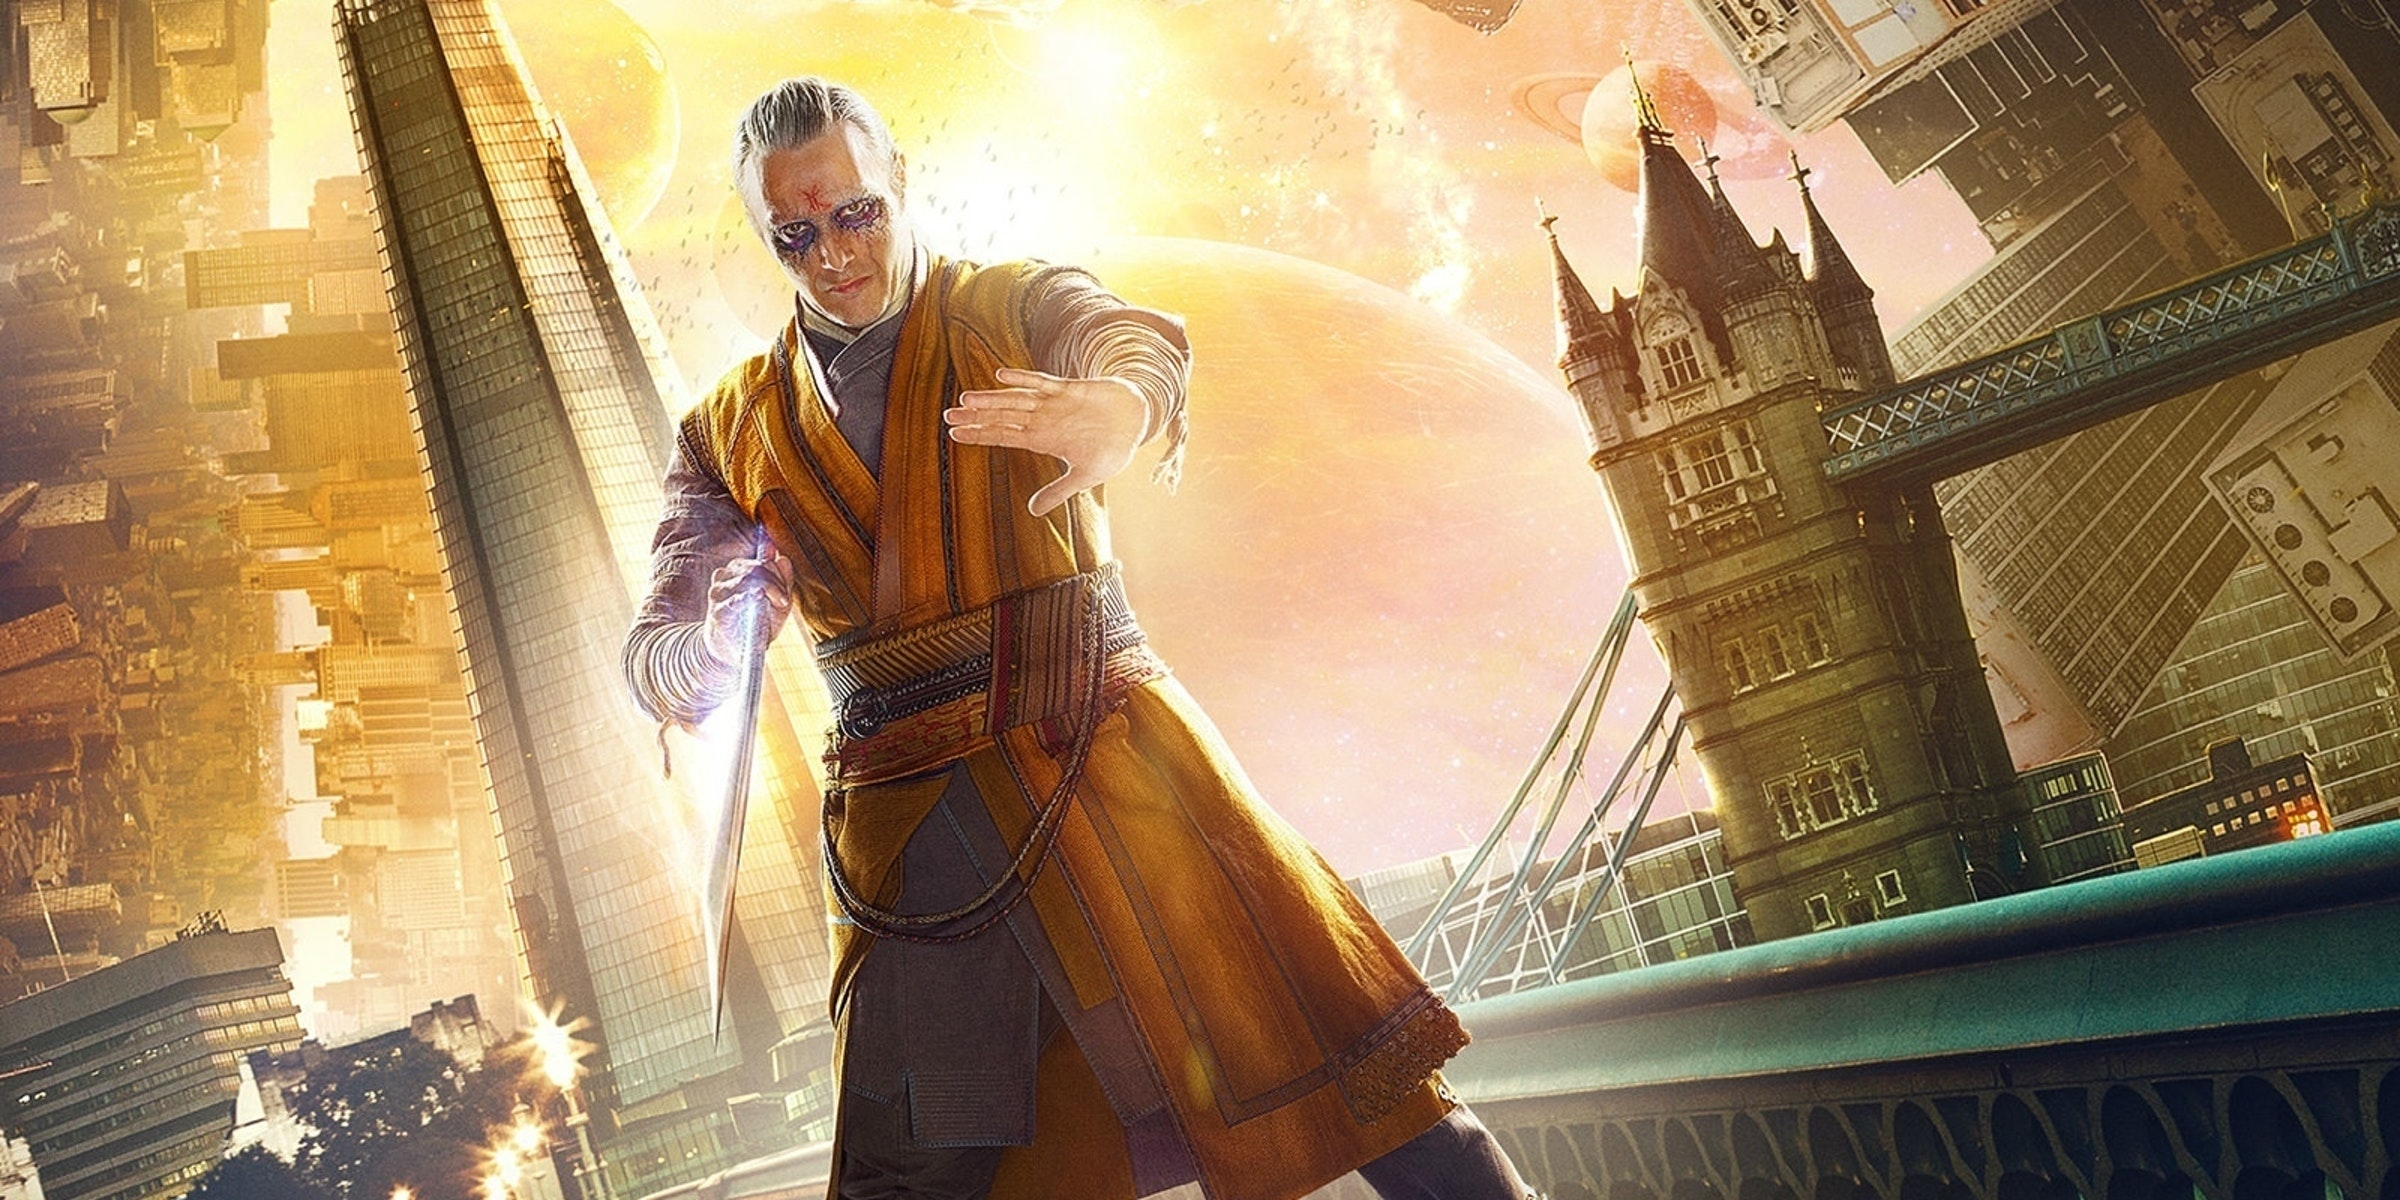 Mads Mikkelsen as Kaecilius for Marvel's Doctor Strange